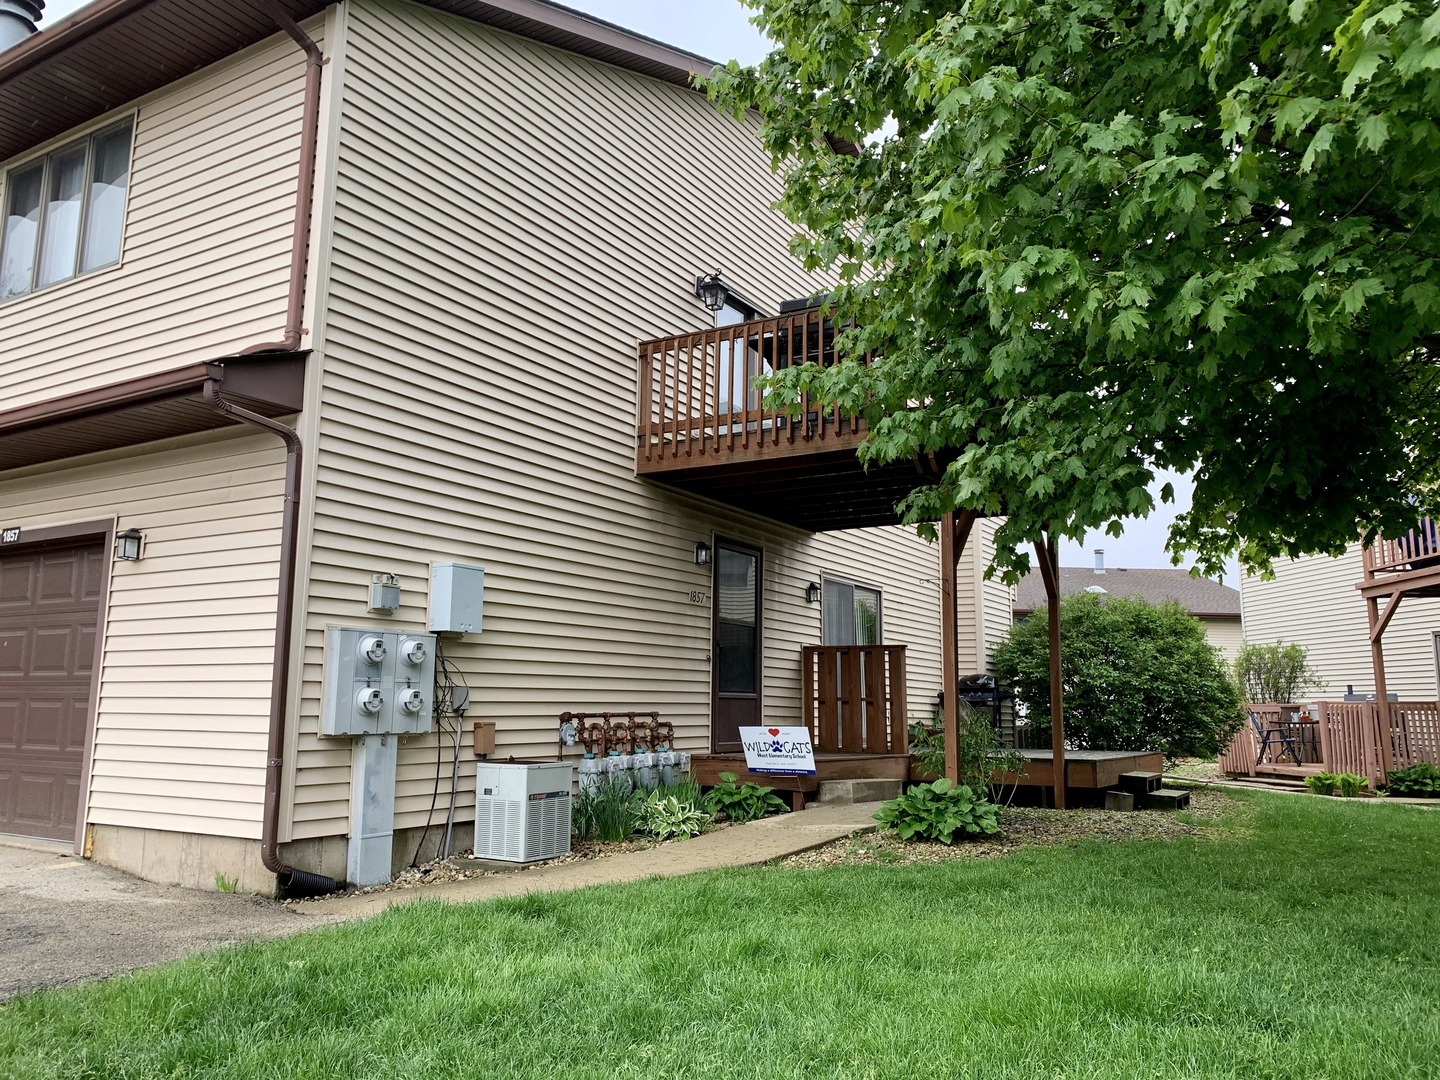 Photo for 1857 Kerrybrook Court, Unit Number 1857, Sycamore, IL 60178 (MLS # 10718432)